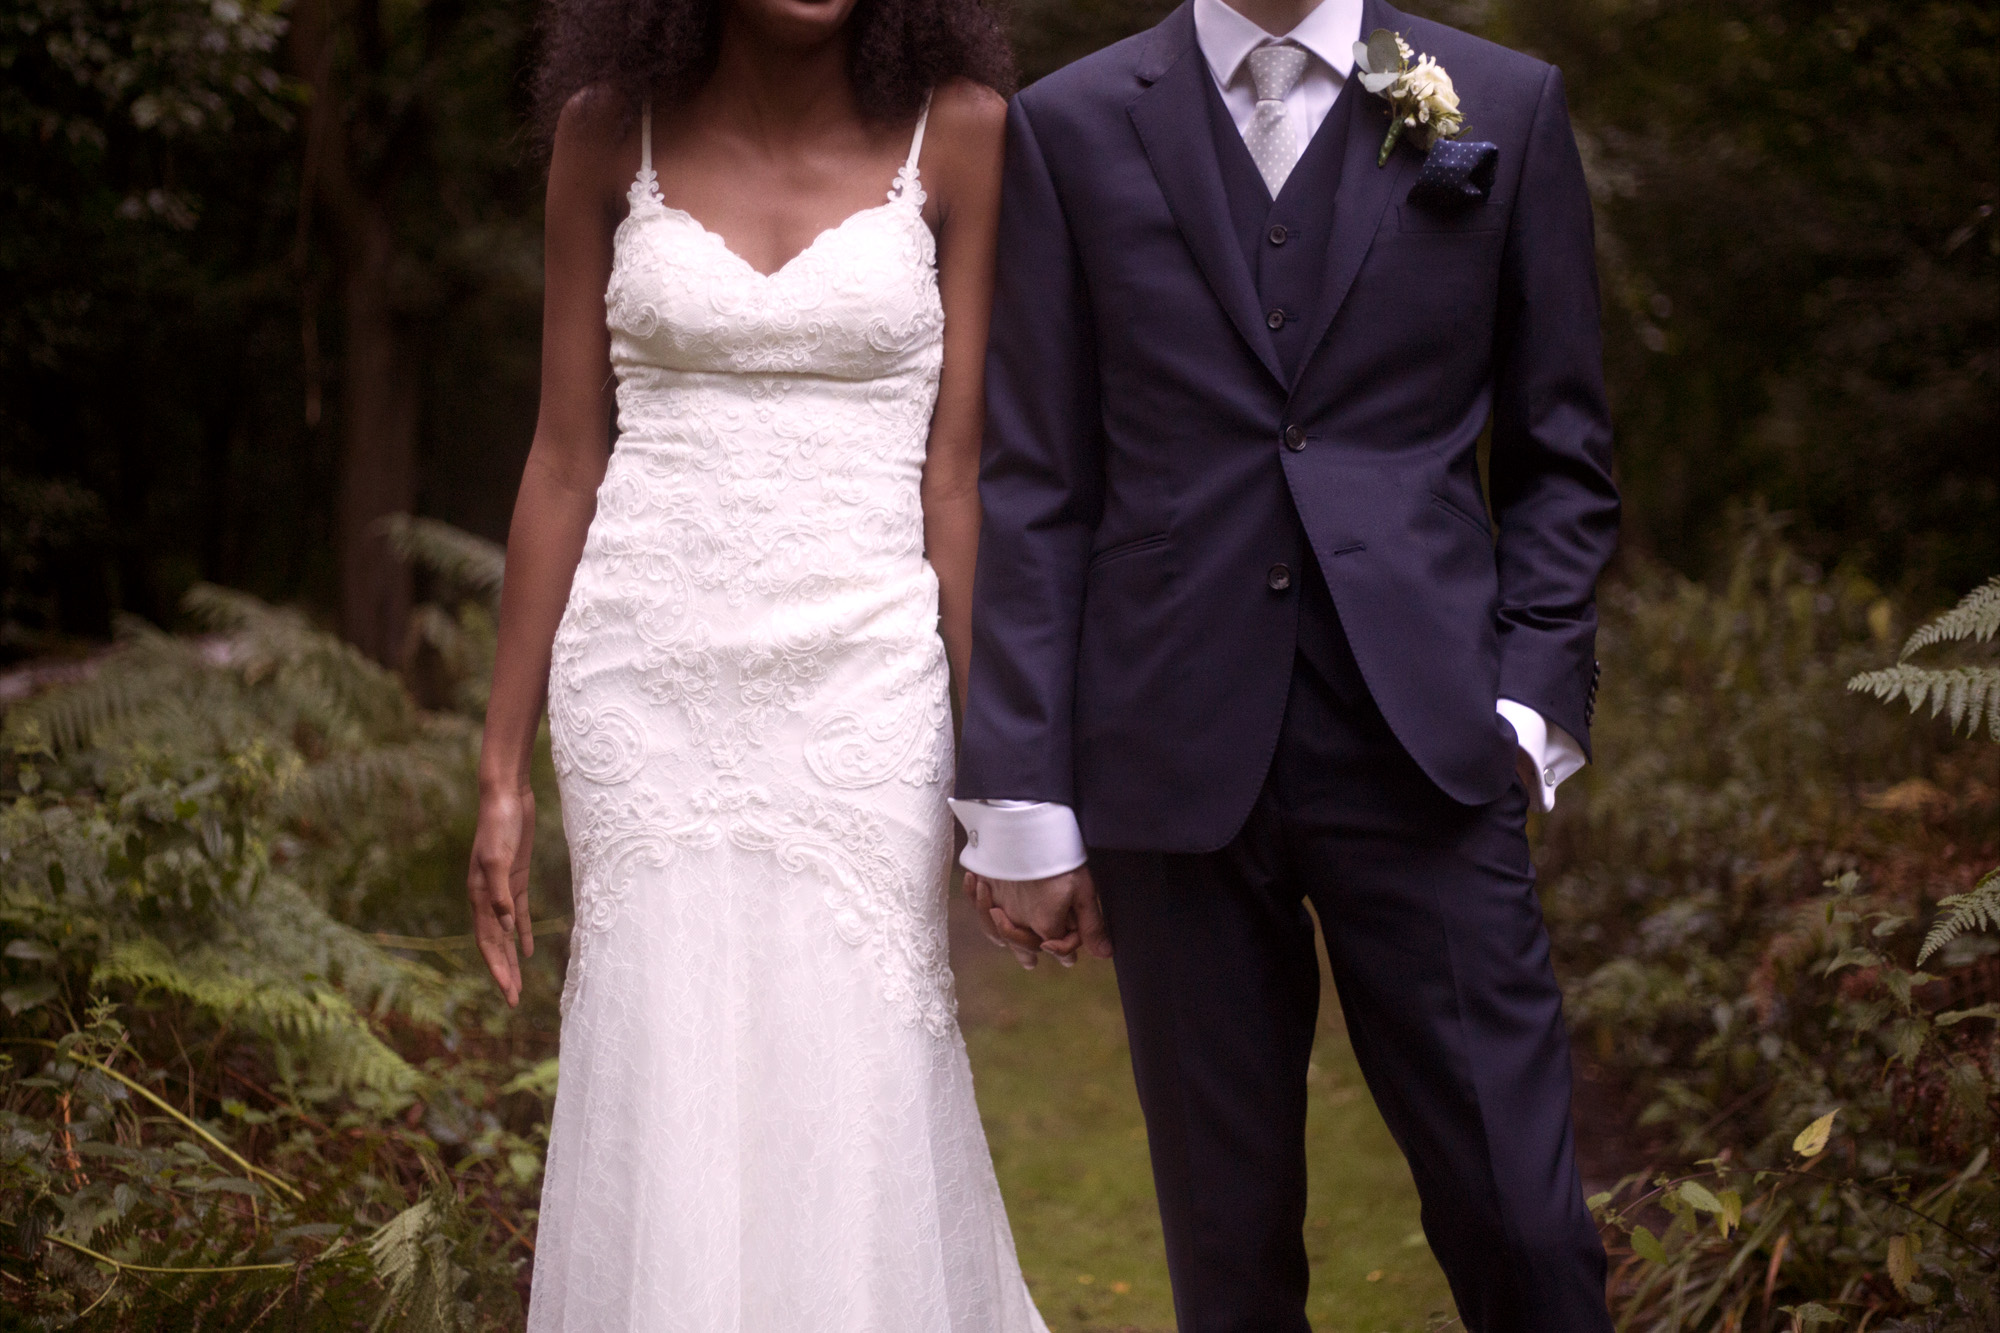 Groom in navy suit and bride in Essence of Australia wedding dress at Cuffley camp outdoor woodland wedding photographer